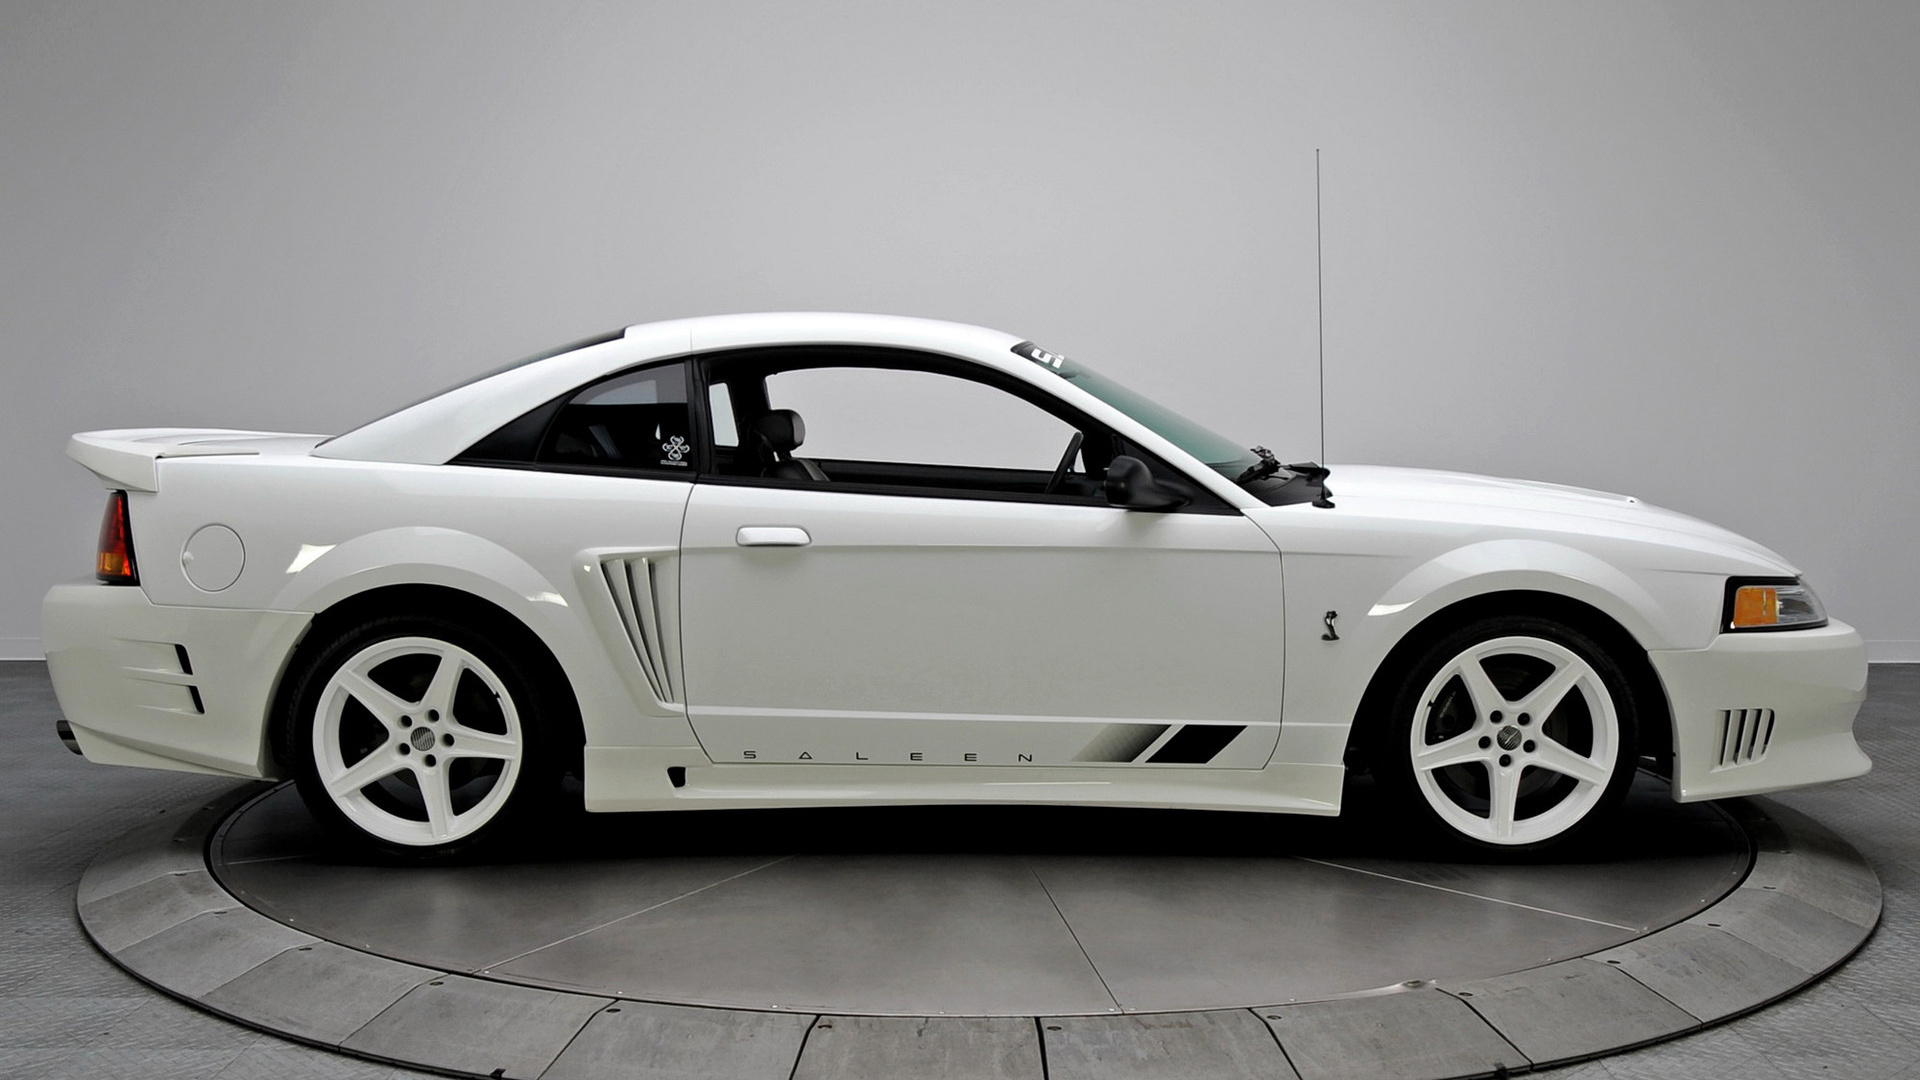 1999 Saleen S281 Sc Wallpapers And Hd Images Car Pixel